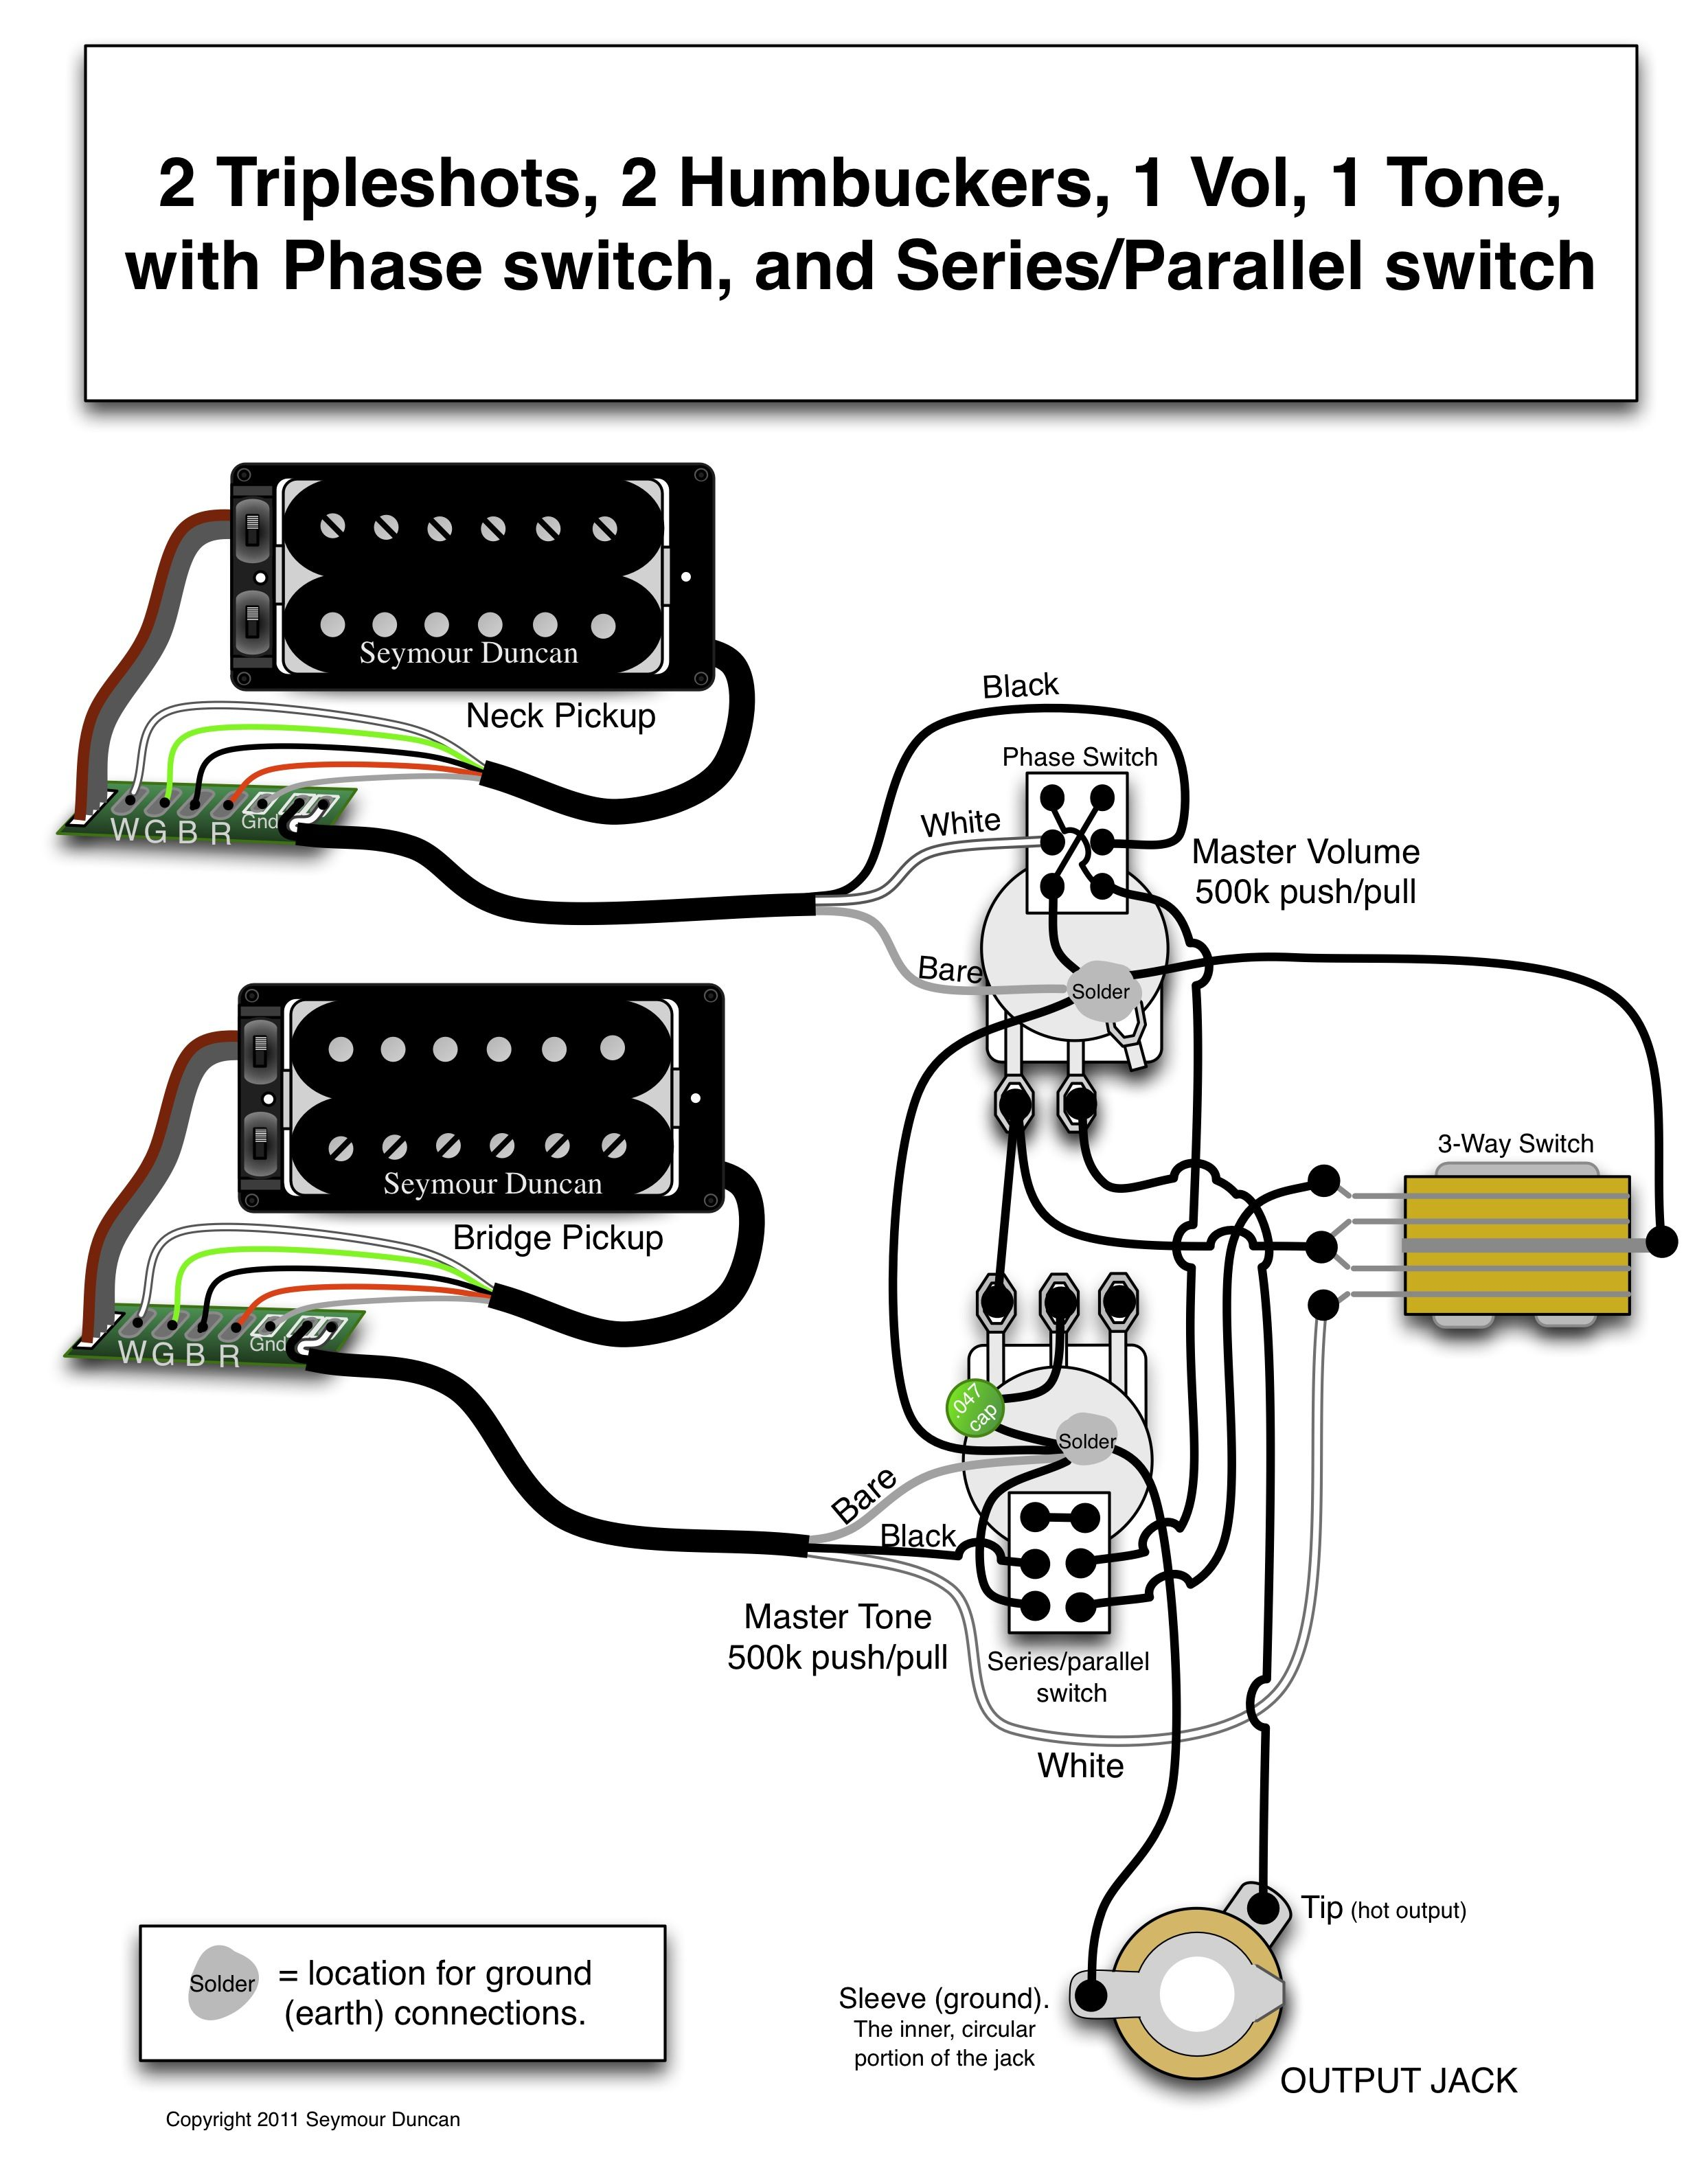 11e7a4ce932088841833425d14ebd2ea seymour duncan wiring diagram 2 triple shots, 2 humbuckers, 1 Basic Electrical Wiring Diagrams at mifinder.co